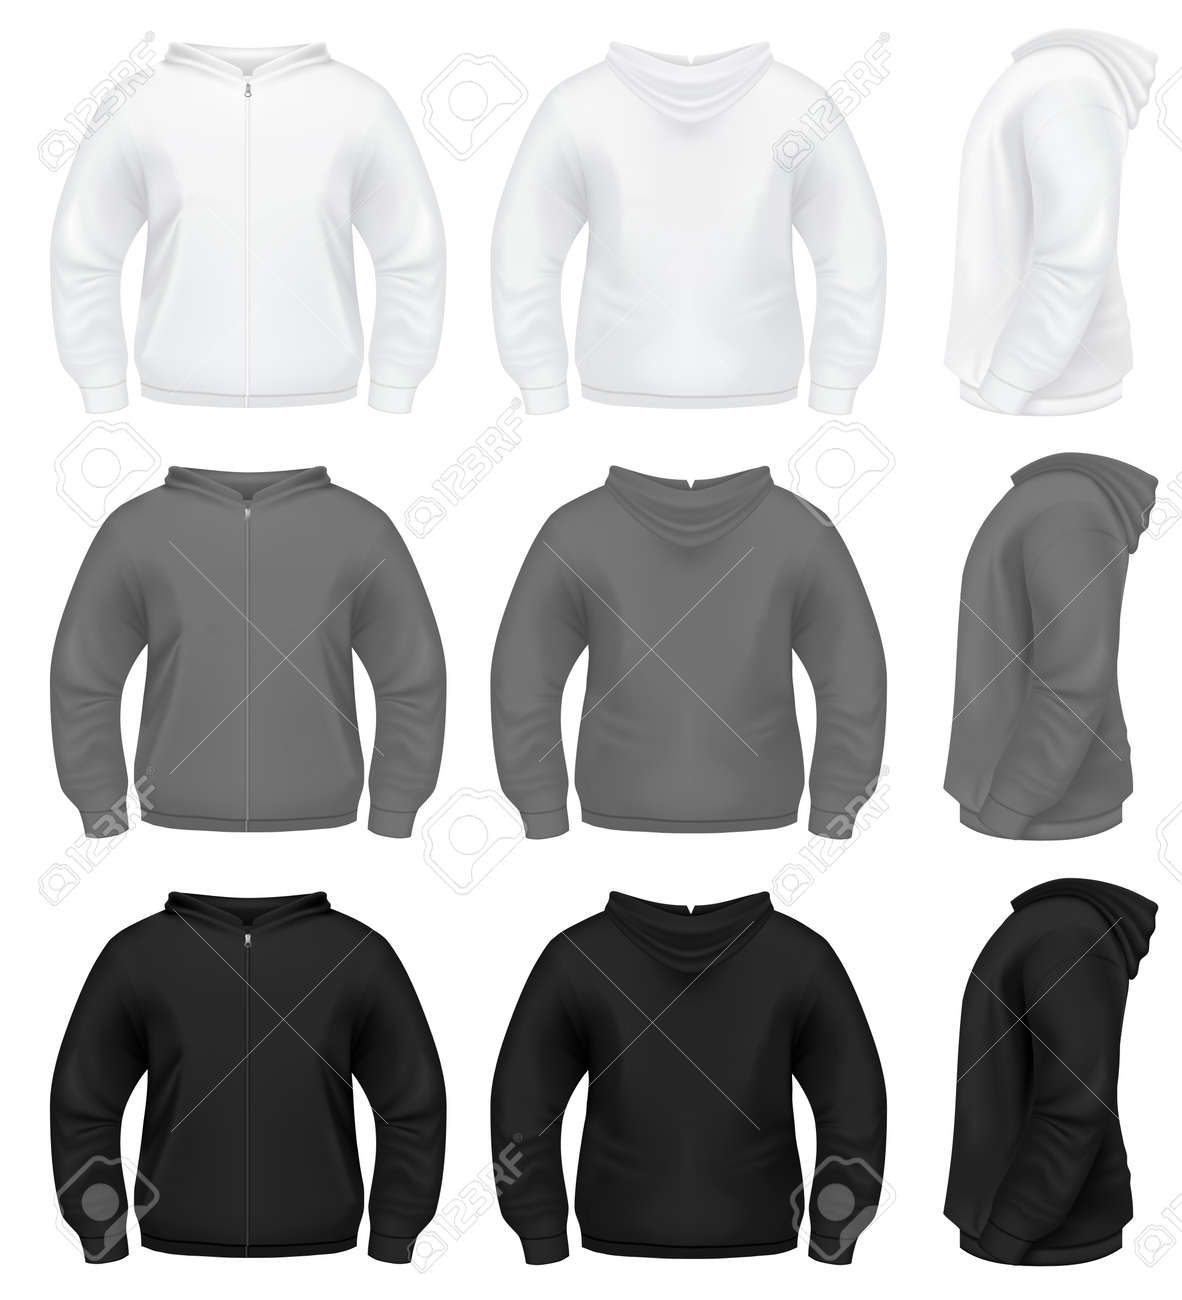 Pullover hoodie template fashion design templates vector black pullover hoodie template 8508 bitnote pronofoot35fo Image collections